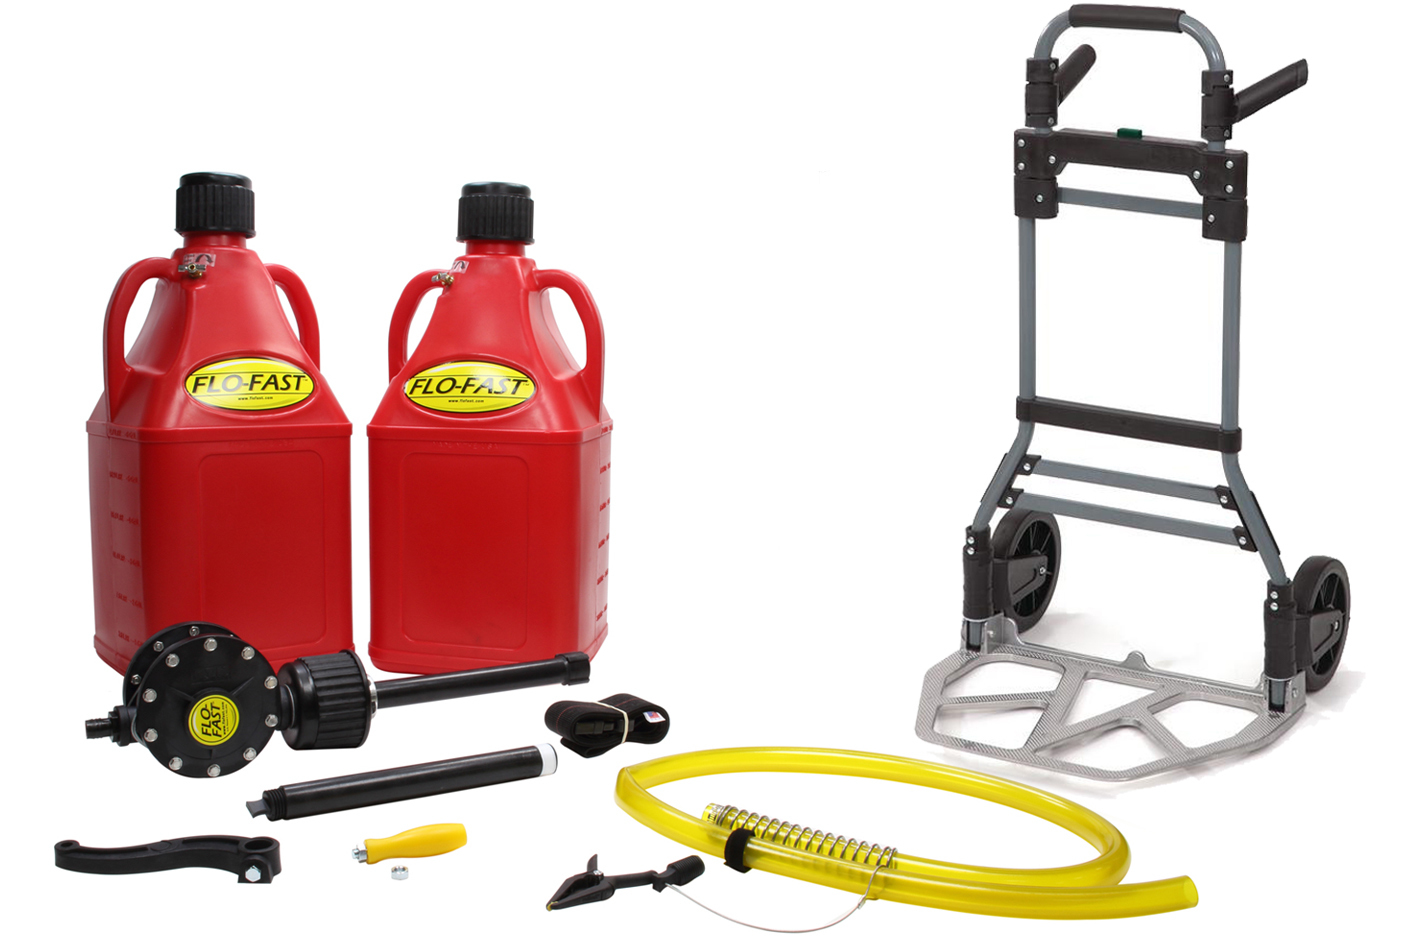 Flo-Fast 10027R Transfer Pump, Complete System, Manual, Hand Crank, Two 7.5 gal Jugs / Cart / Hose / Strap Included, Kit